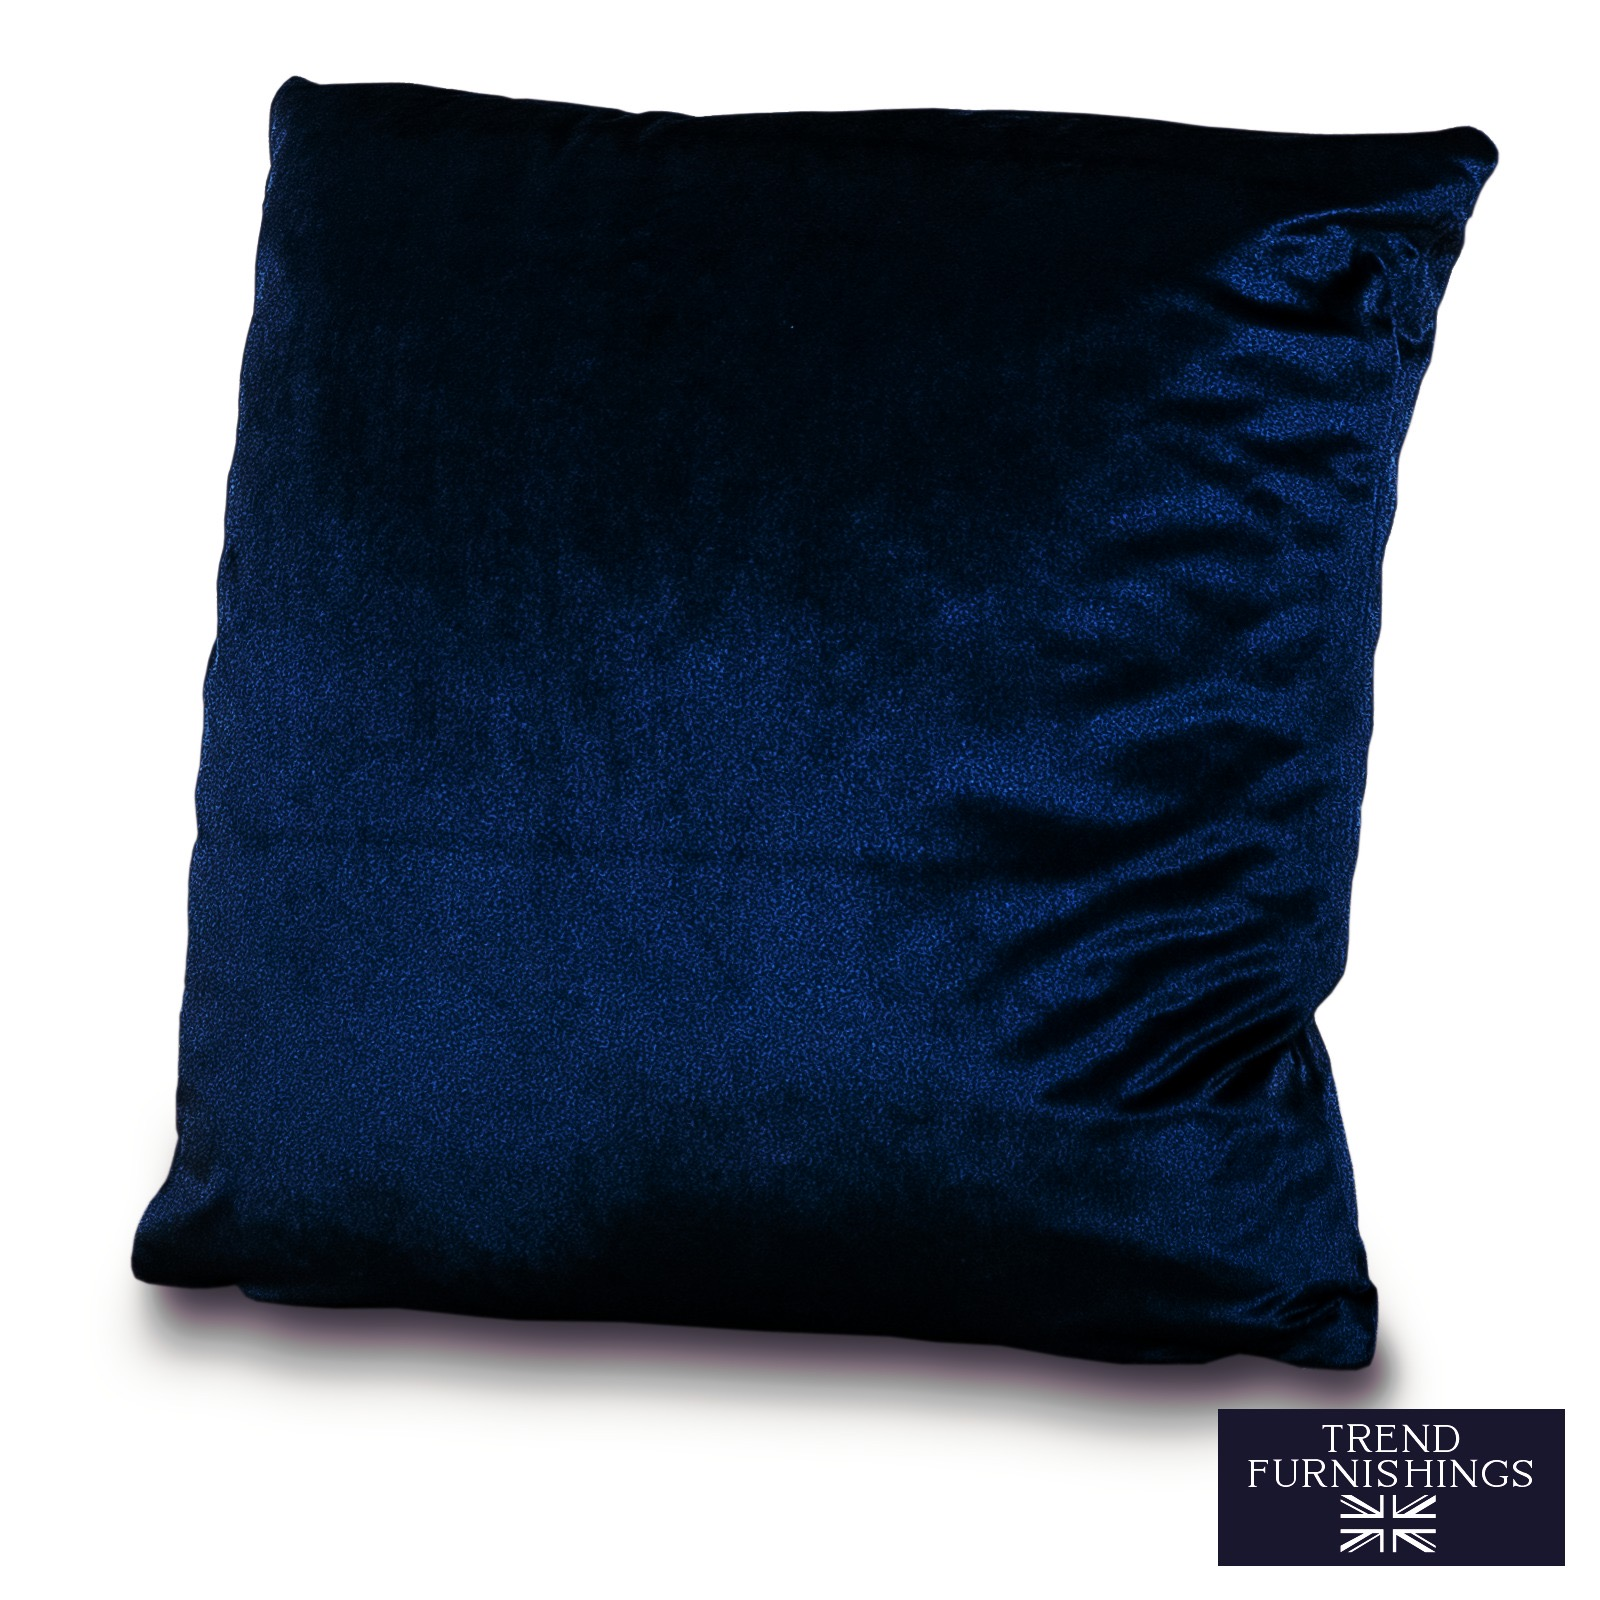 Velvet Soft Plush Cushion Covers 9 Colours Filled or Unfilled Handmade in the UK 4